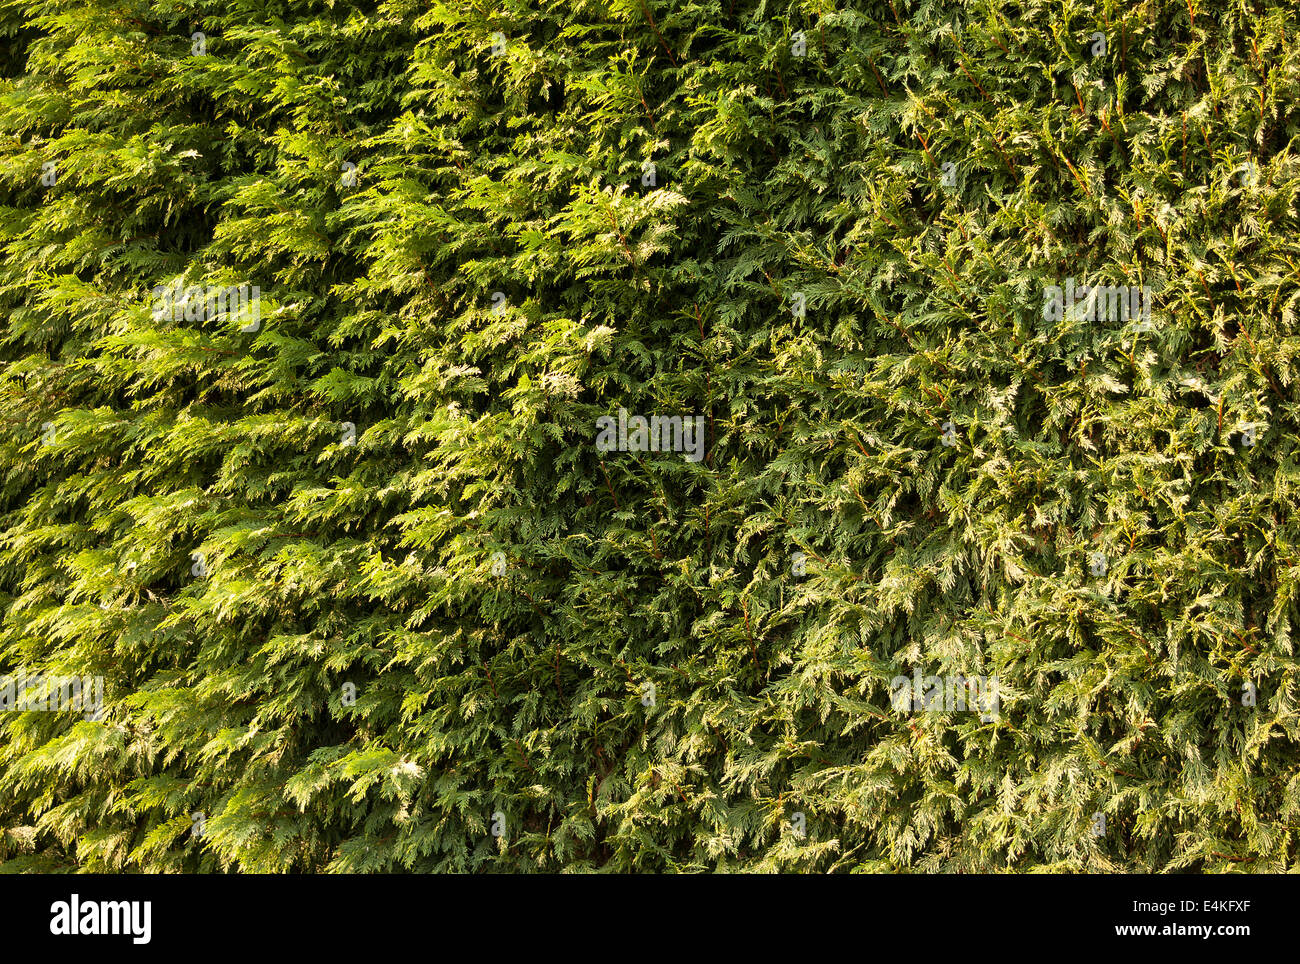 Conifer hedge showing part with seasonal trim and part untrimmed during annual maintenance - Stock Image